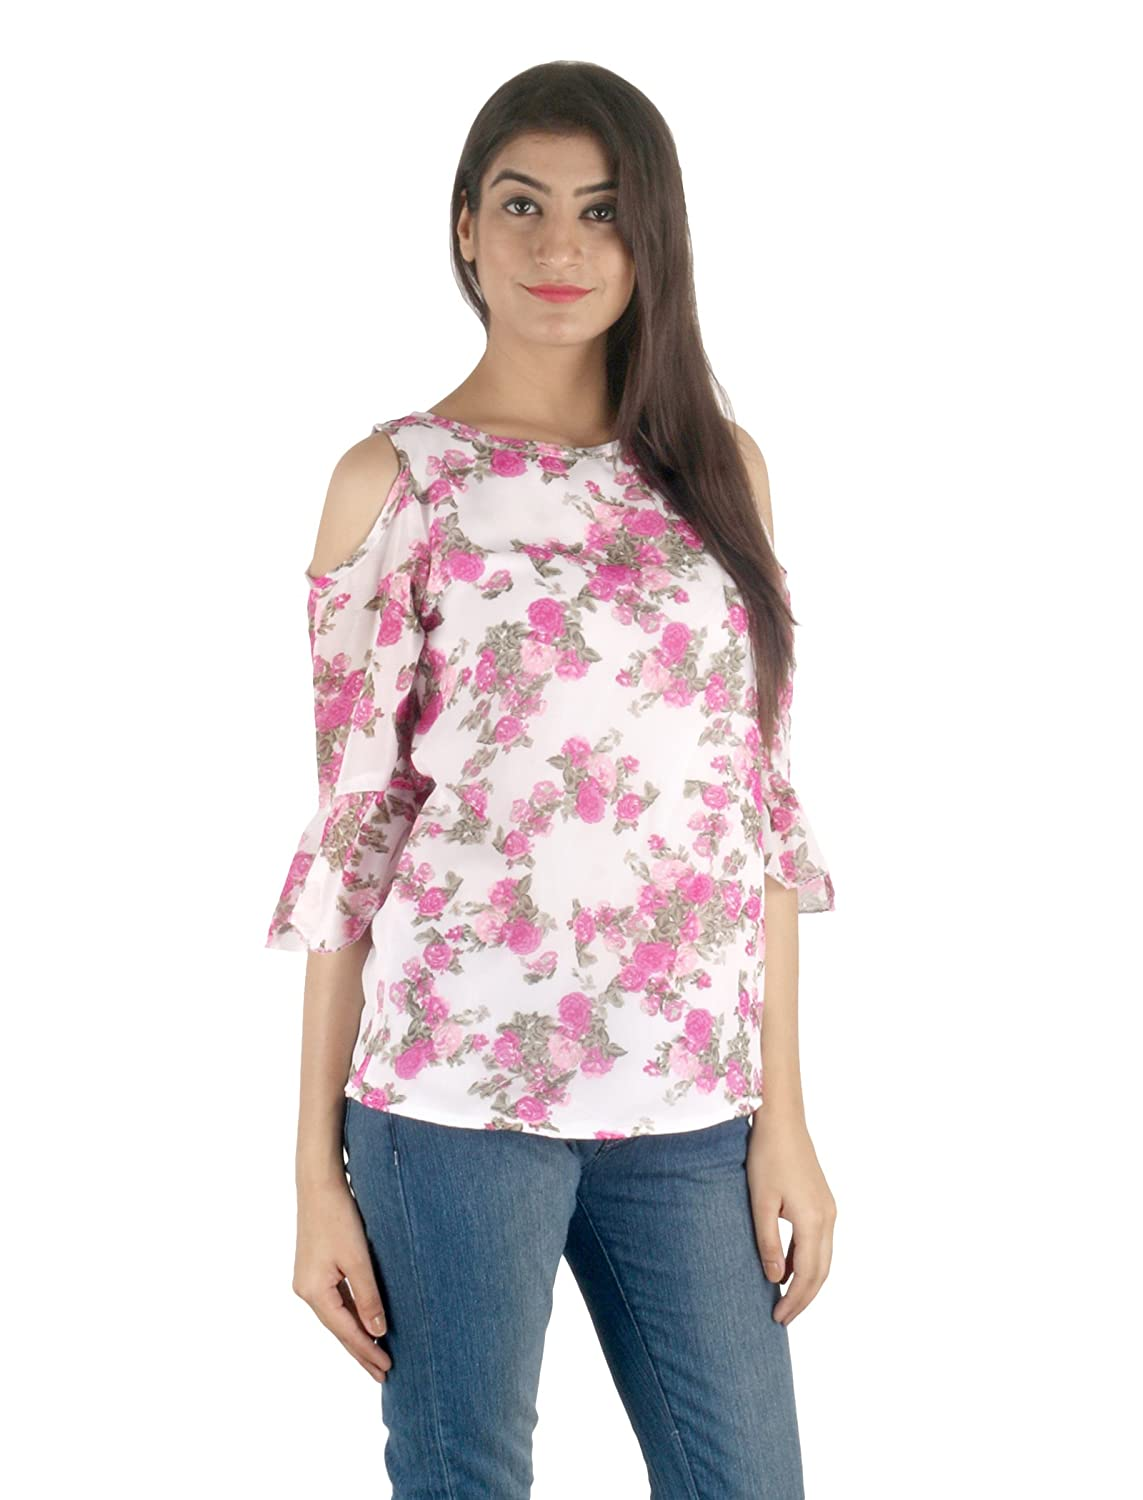 c2482825df831 STakriti1 Georgette with Lining Printed Pink Off Shoulder Cut Sleeves Top  for Girls Women  Amazon.in  Clothing   Accessories